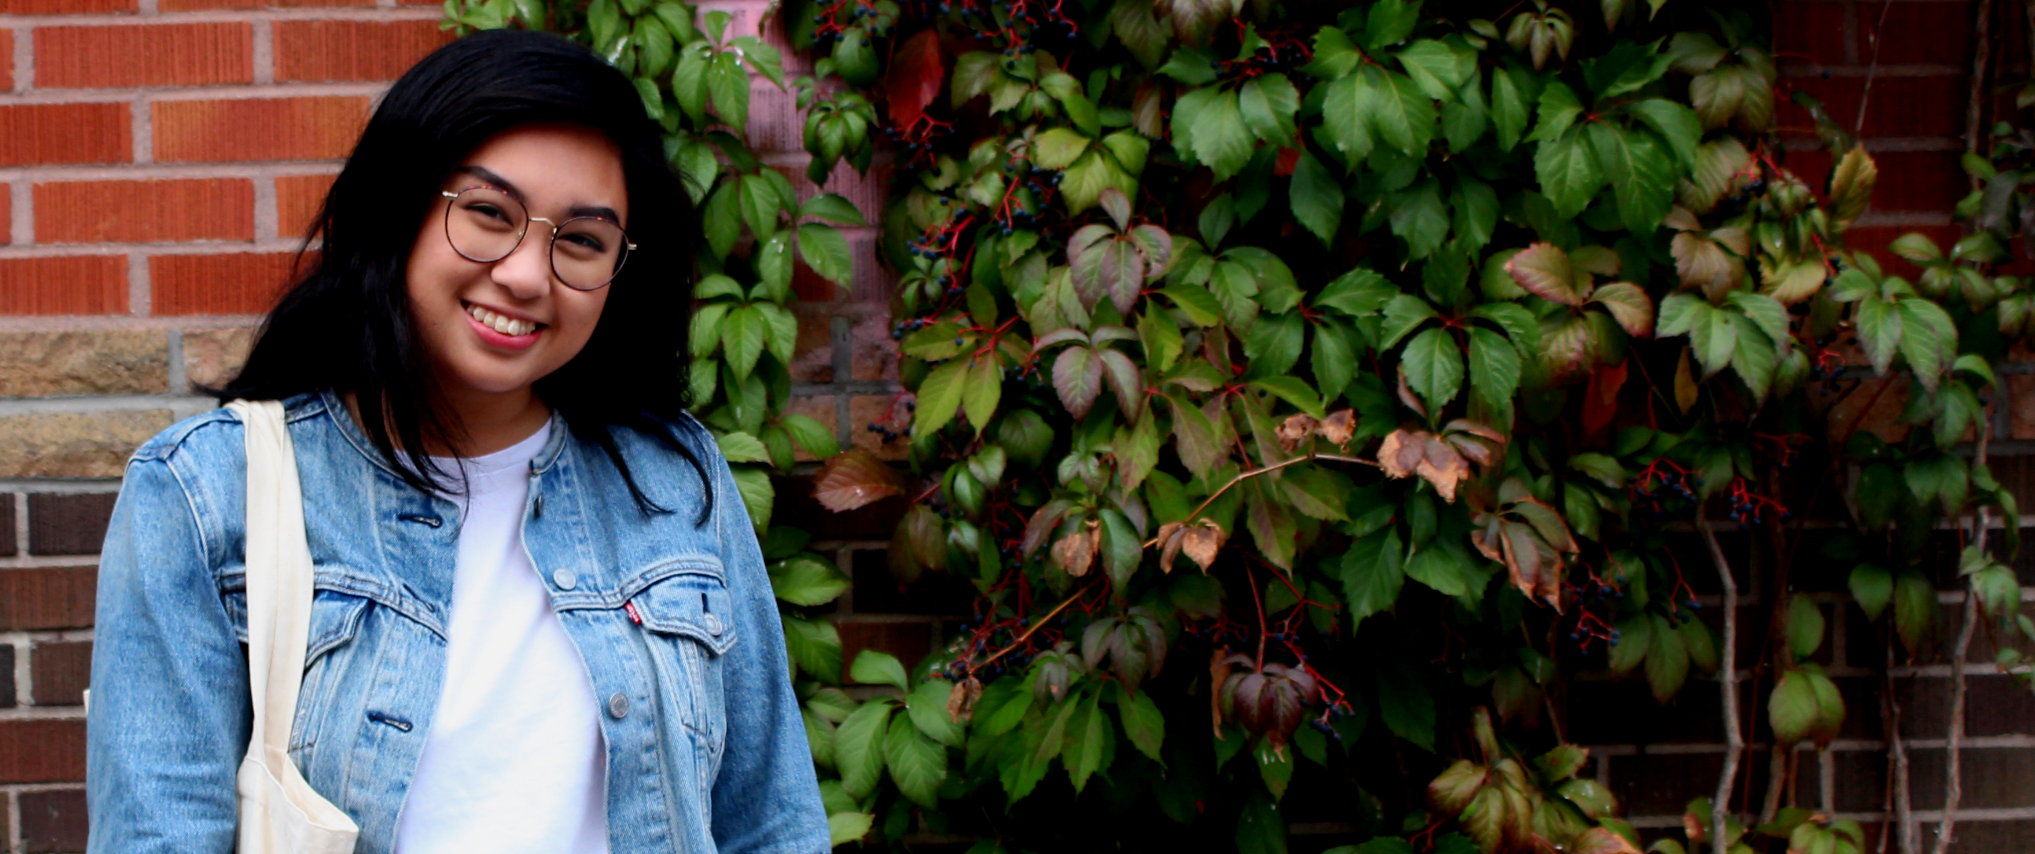 girl posing in jean jacket in front of brick wall with vines